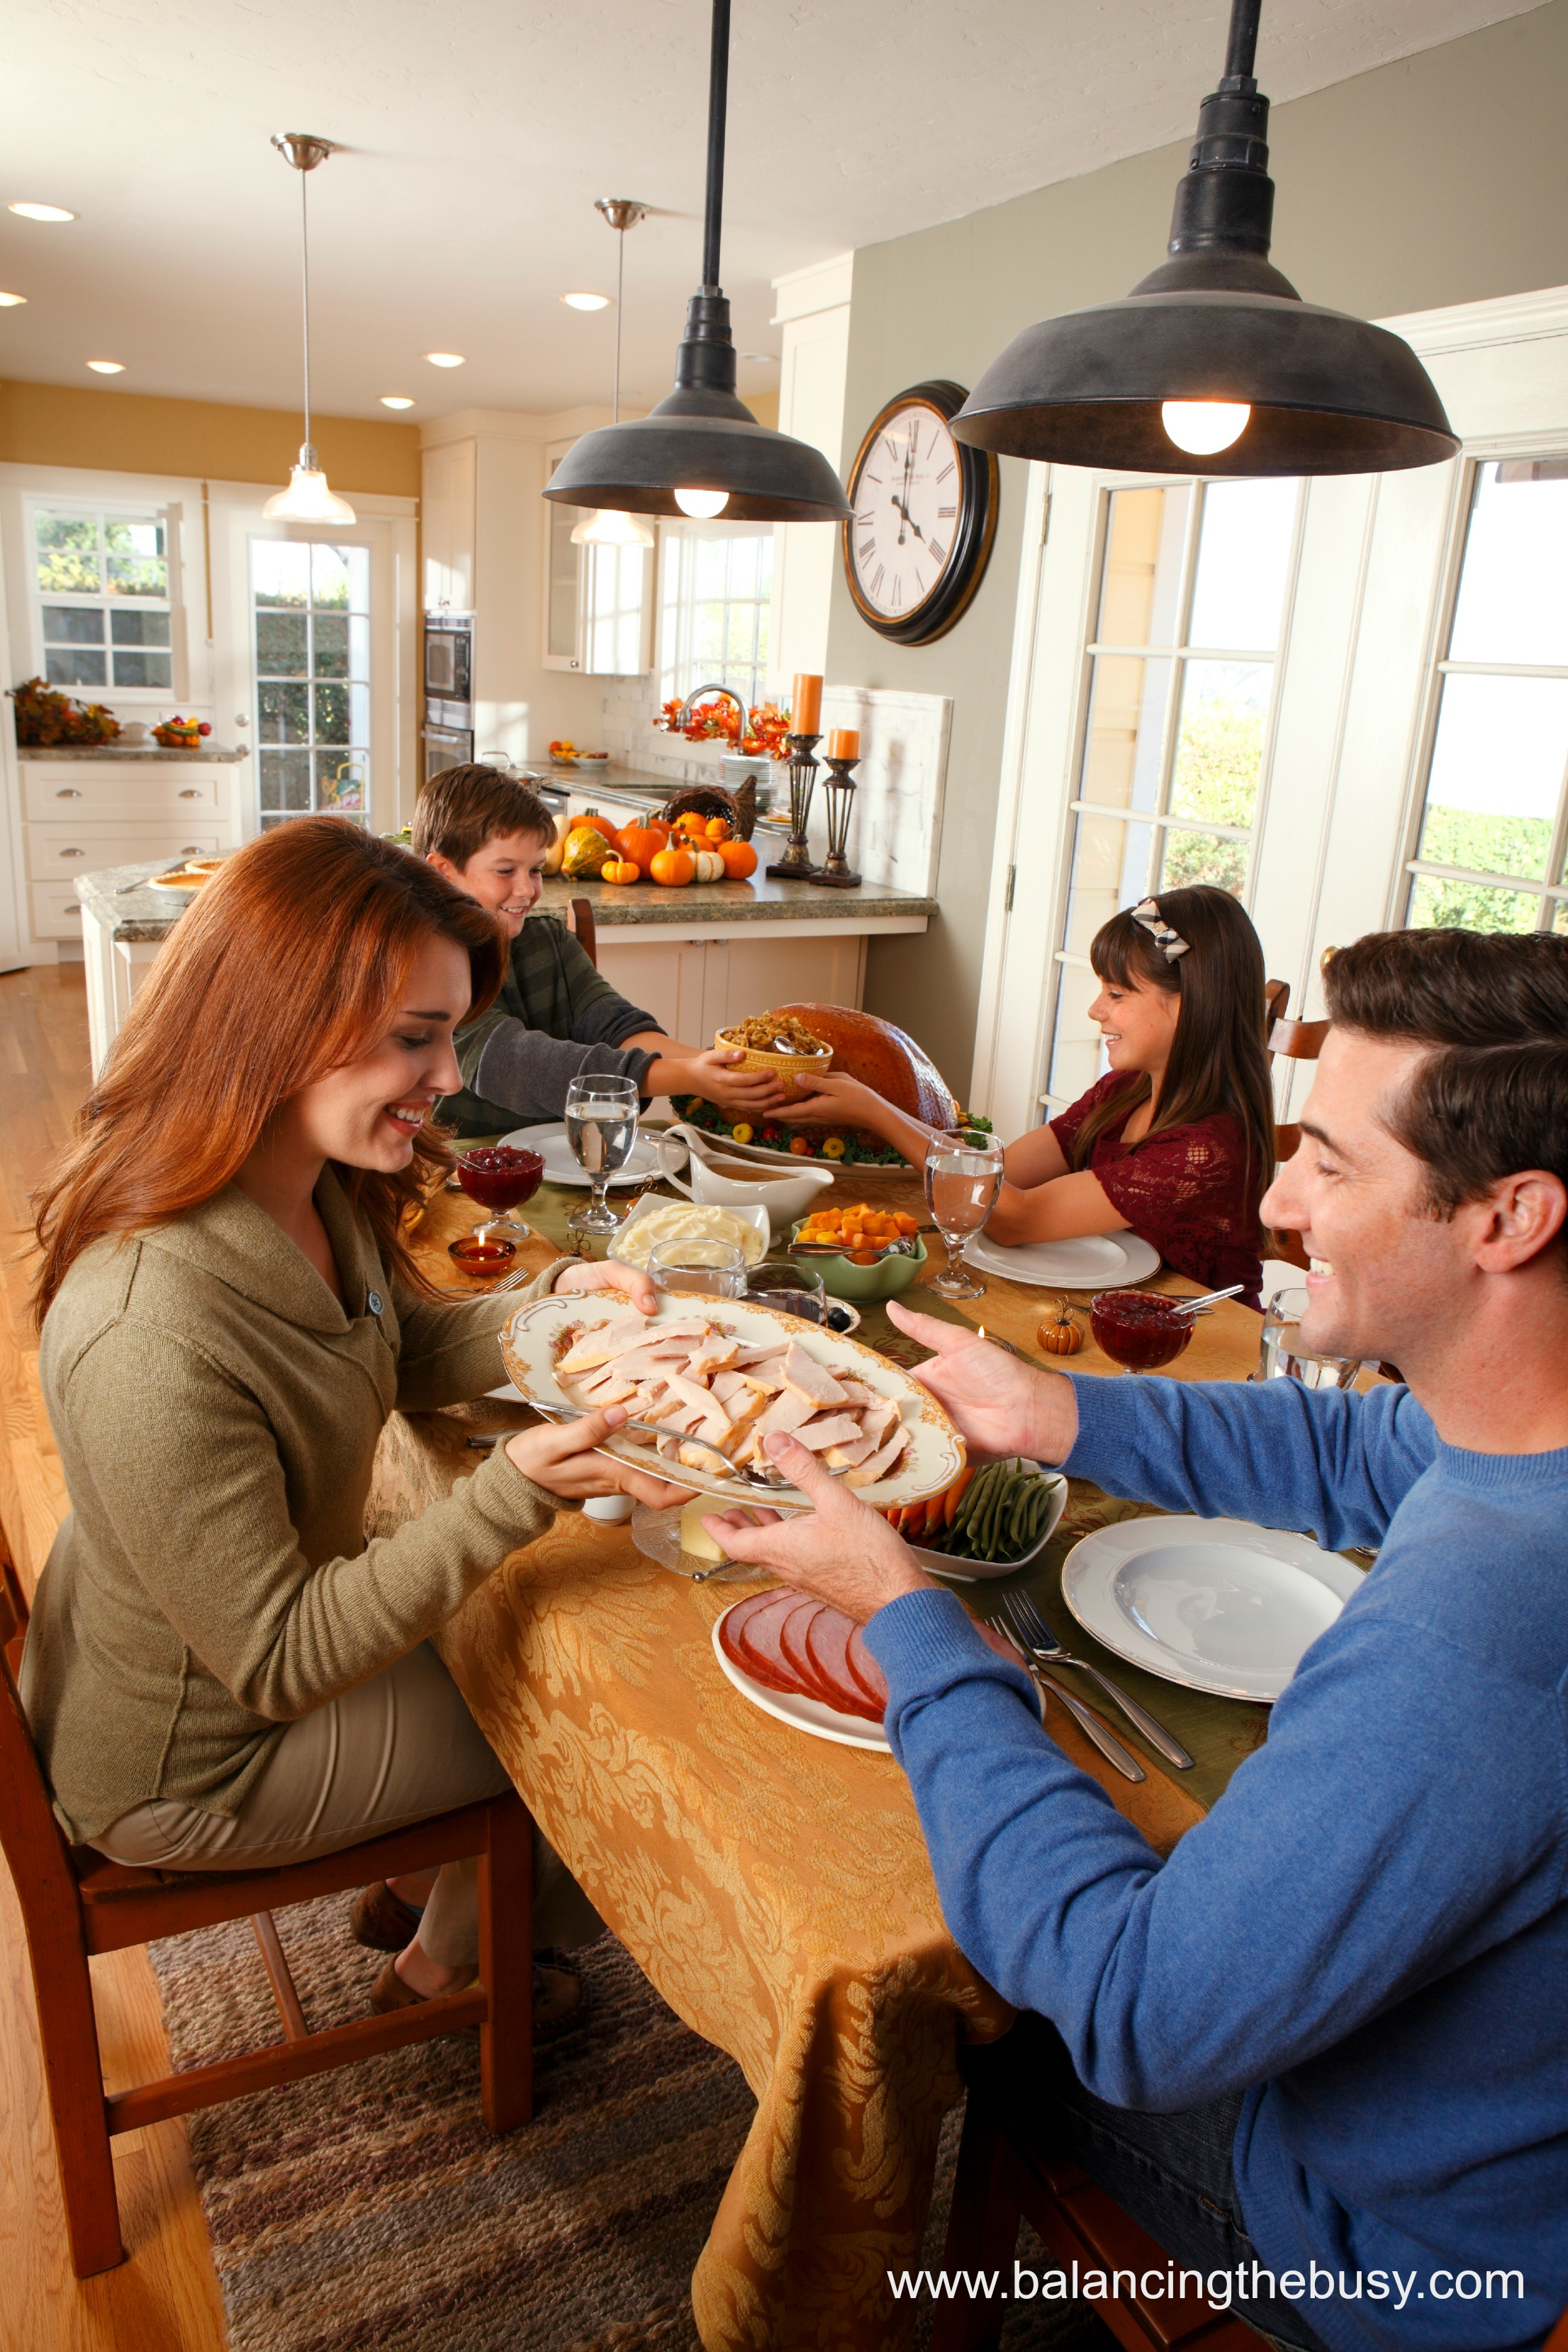 the importance of a family having dinner together The dinner table is a sacred place for a family to come together (shutterstock) courtesy of almost every family sitcom made in the last 60 years, the family dinner as we know it is an occasion for meatloaf, mashed potatoes, at least one fight over the salt shaker, and a.